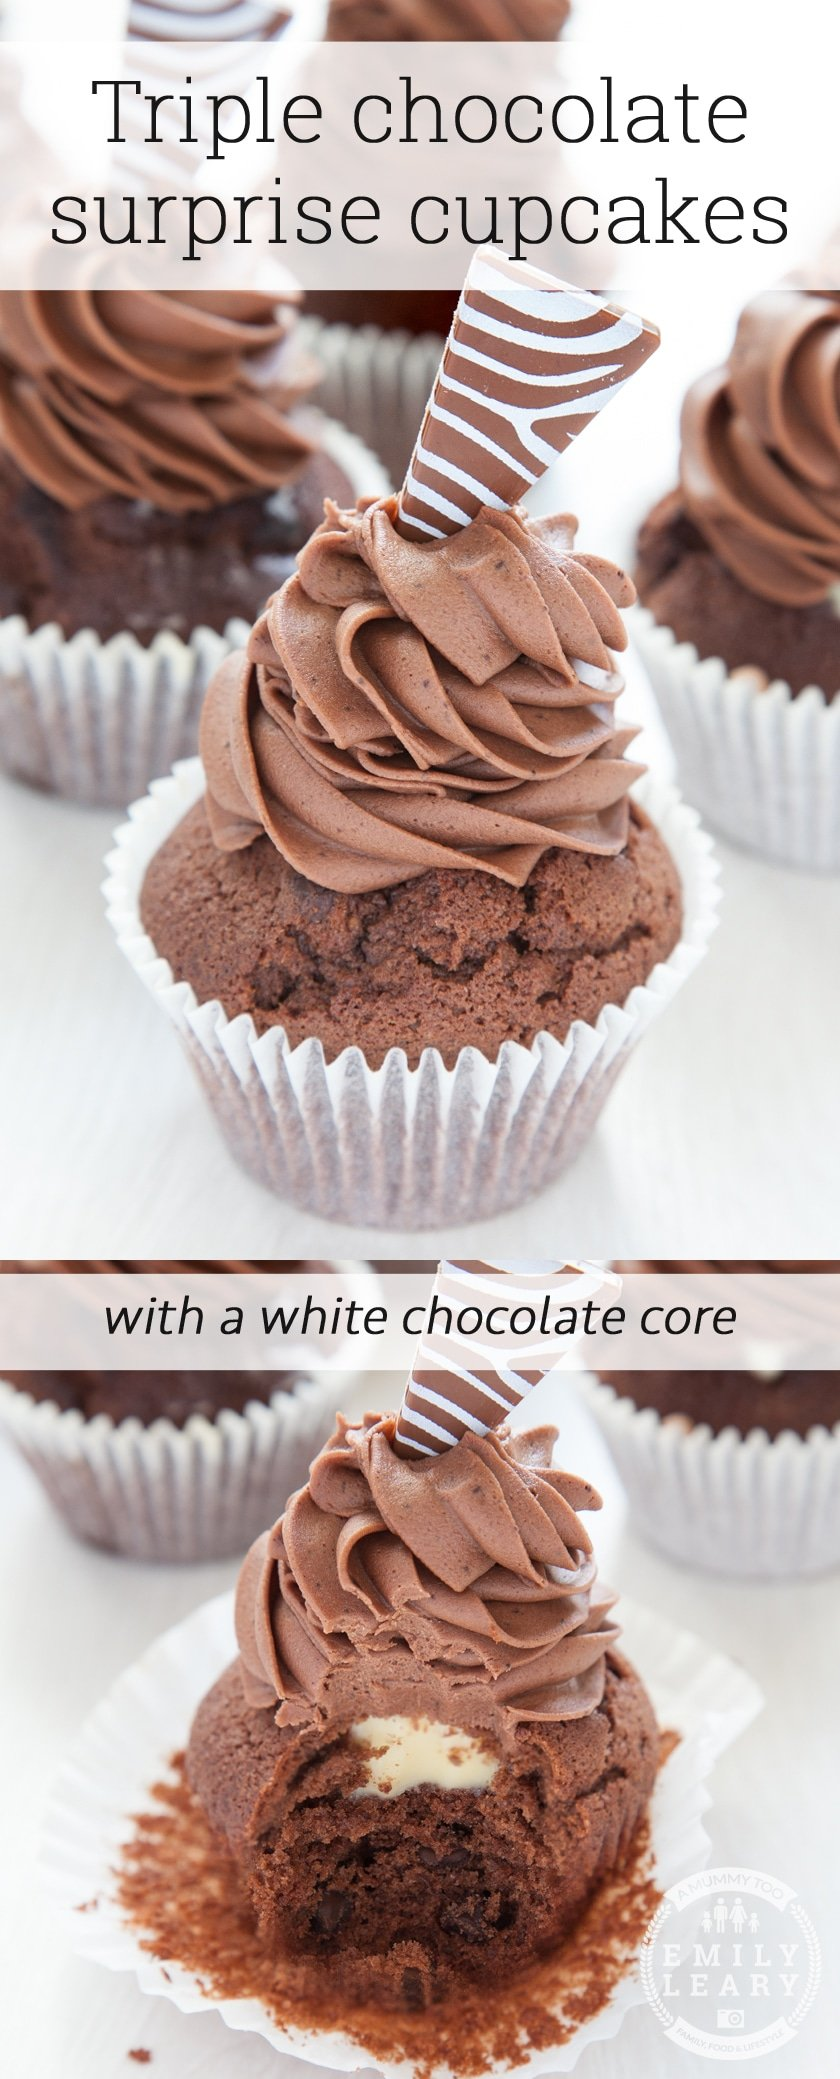 Triple chocolate surprise cupcakes with a white chocolate core